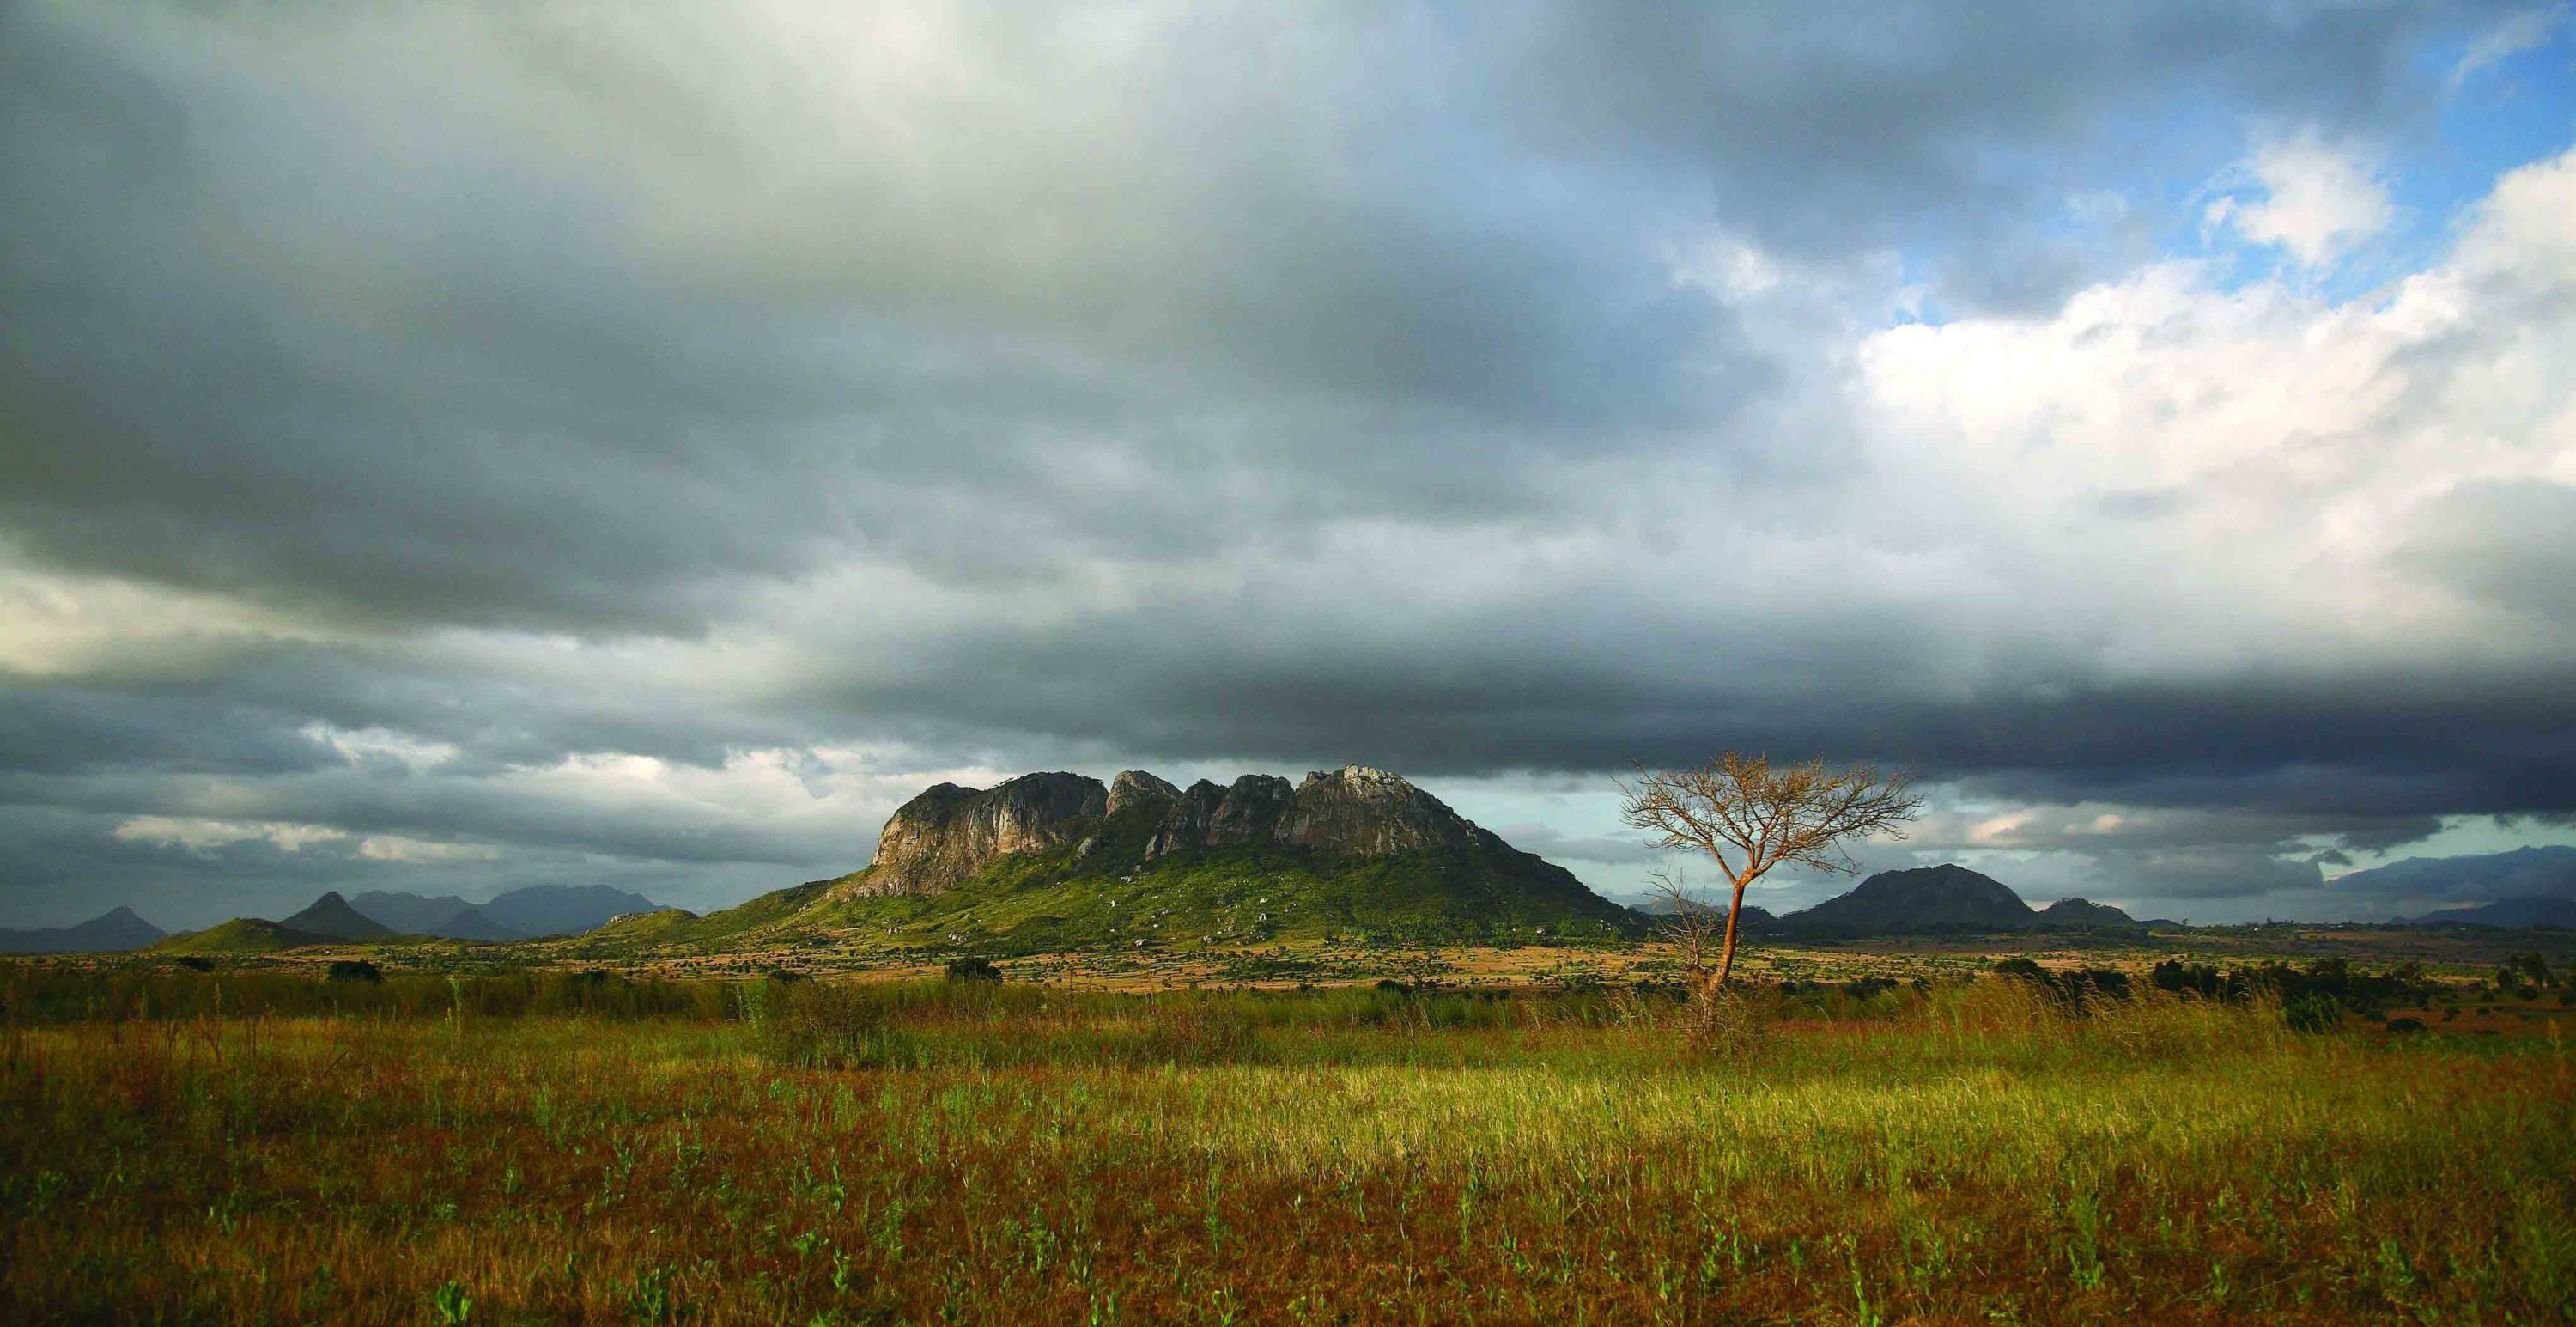 Photo of Farm ladnscape in central Malawi. By ILRI/Stevie Mann, CC 2.0